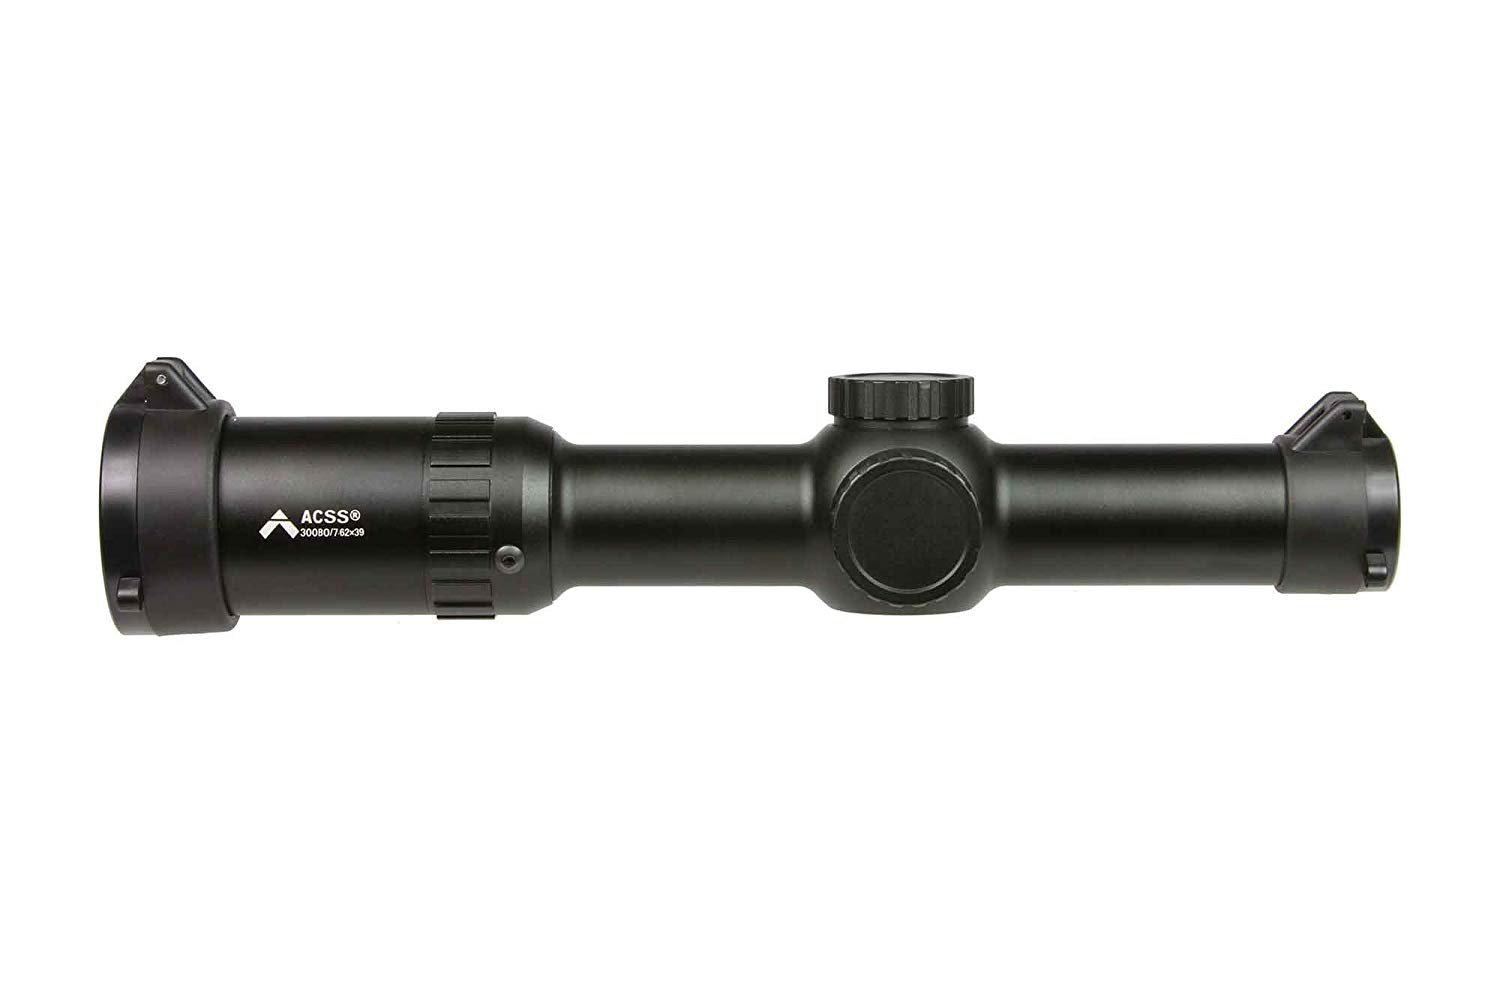 Primary Arms 1-6x24 SFP Rifle Scope (Gen III) with Illuminated Chevron ACSS 300BLK 7.62x39 CQB Reticle